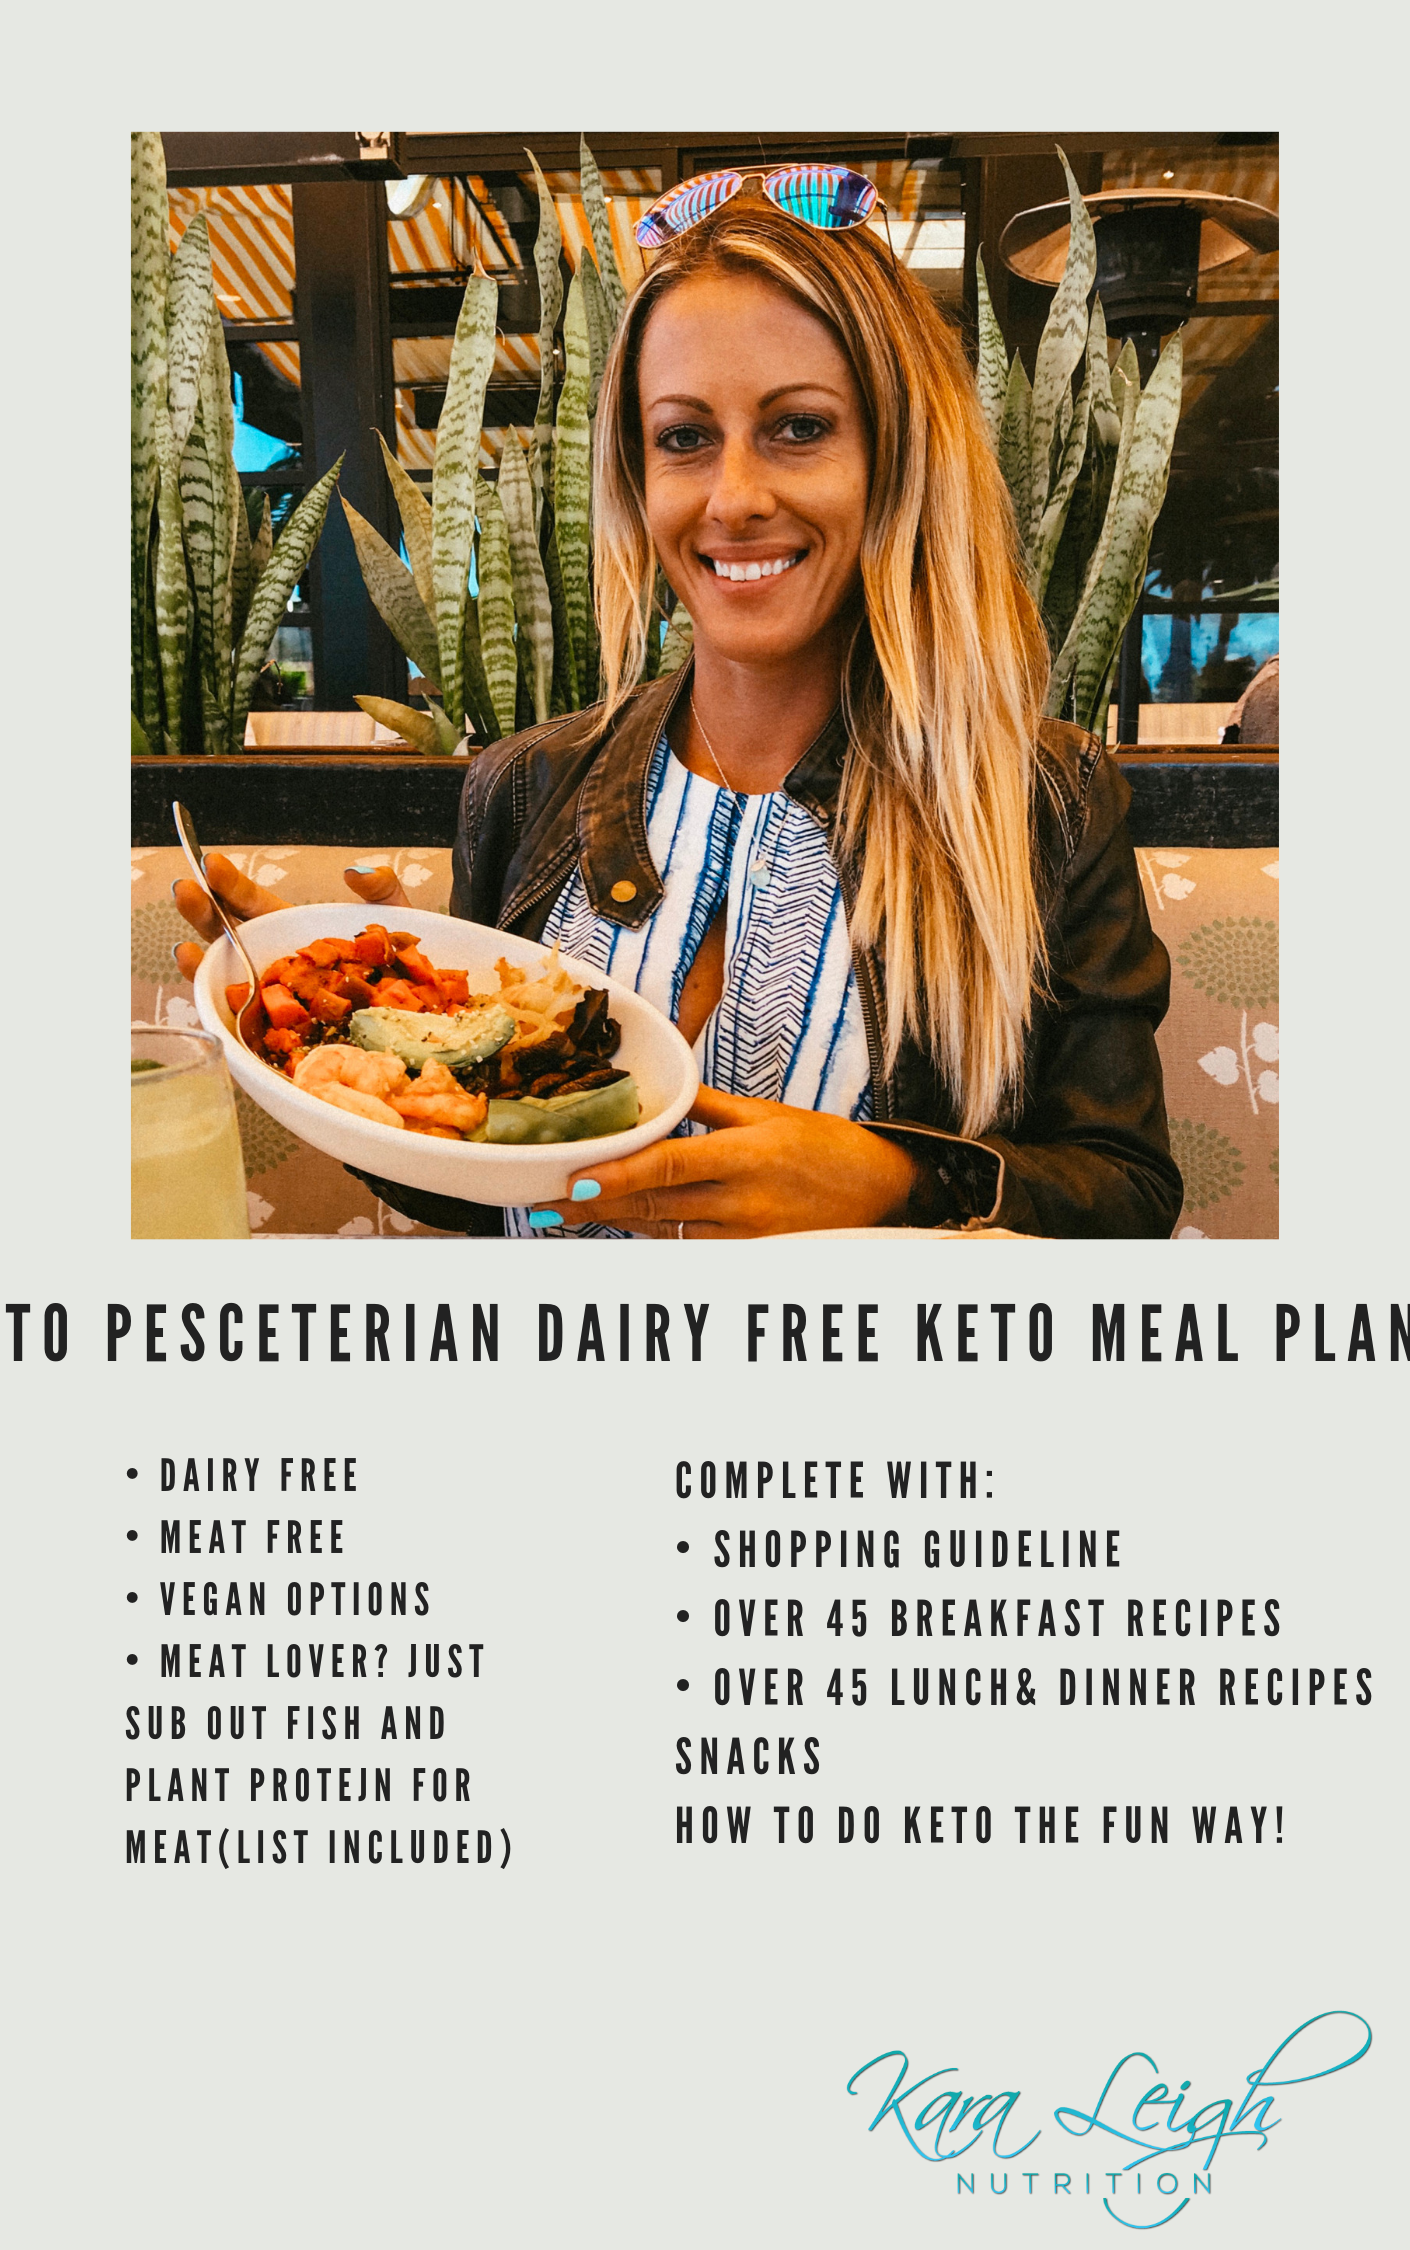 Keto Made Simple MealPlan & Guideline - Dairy Free, Pescatarian/Vegetarian